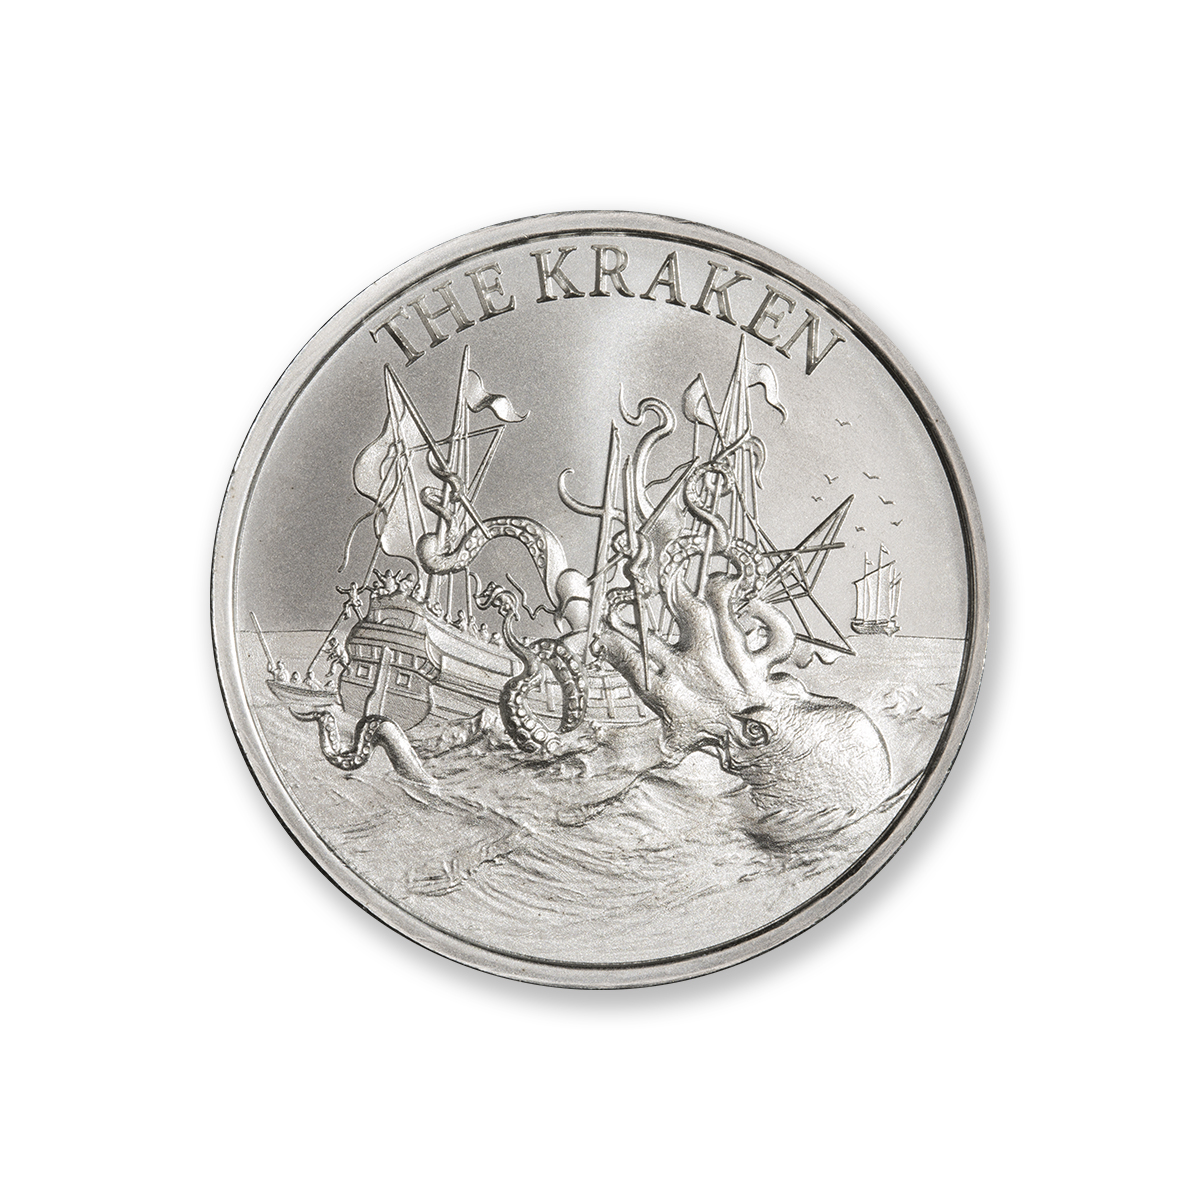 THE KRAKEN – 1 TROY OUNCE – 39MM